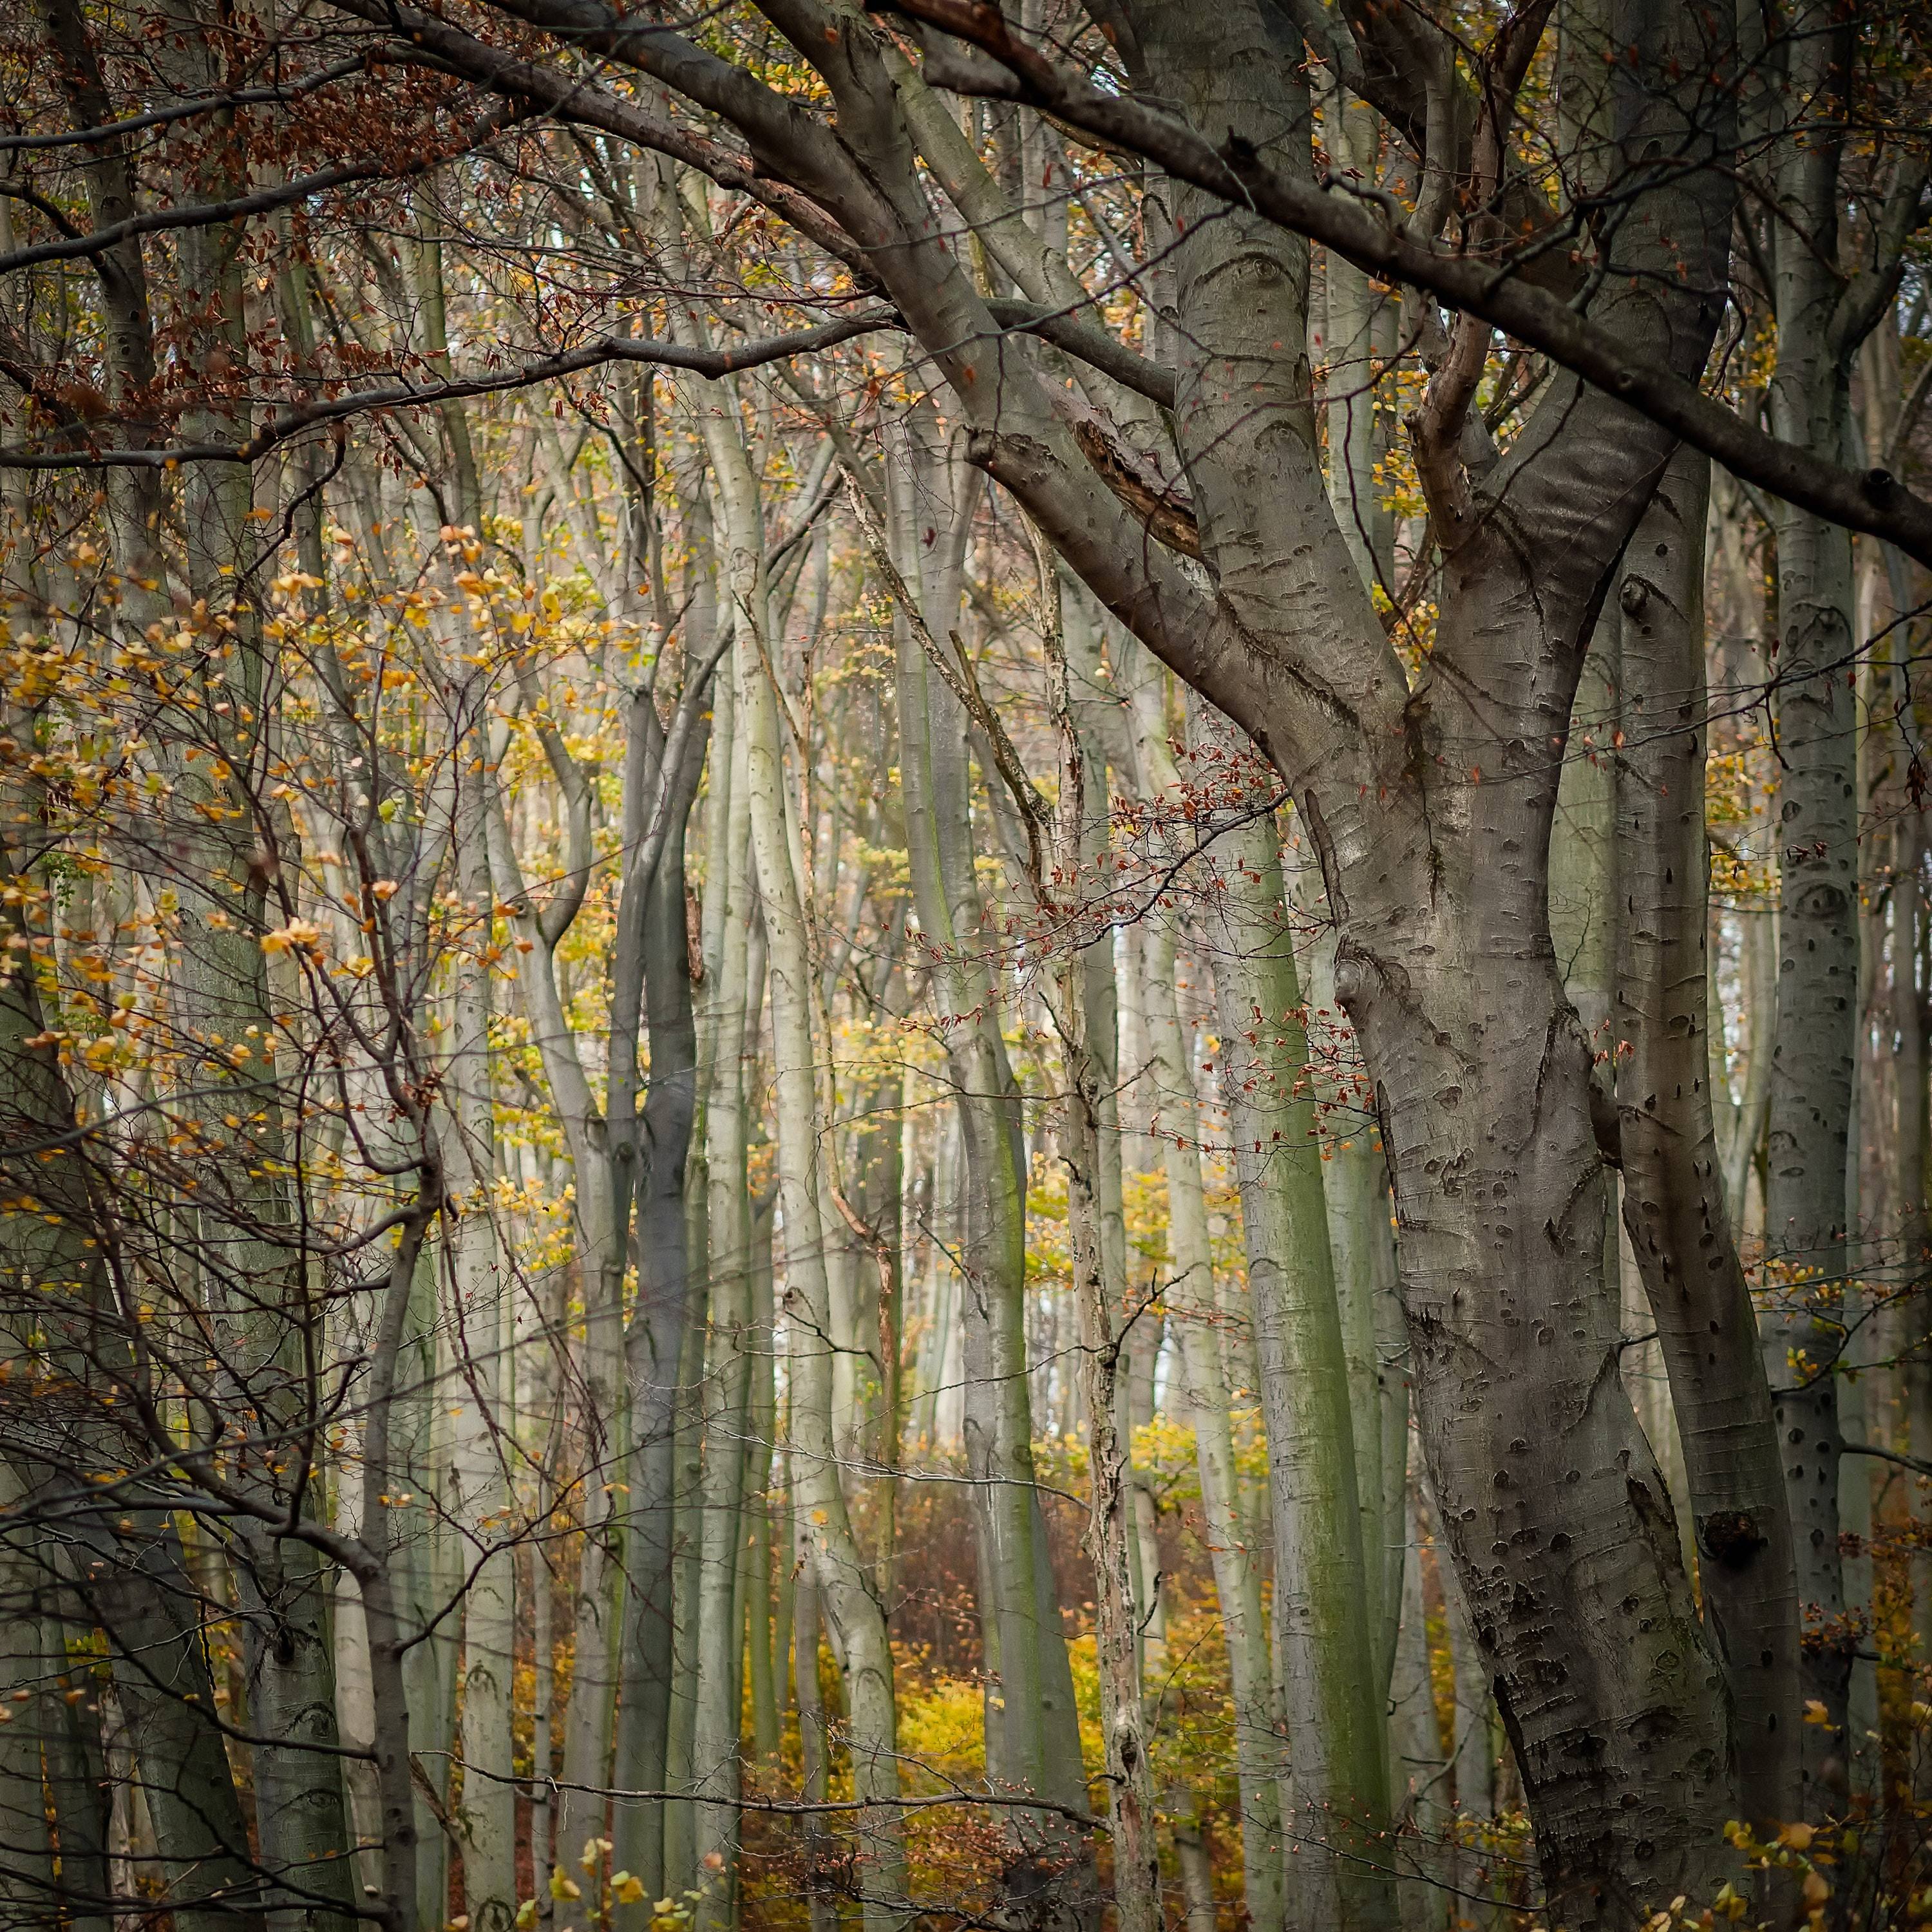 A view inside a forest of leafless trees.